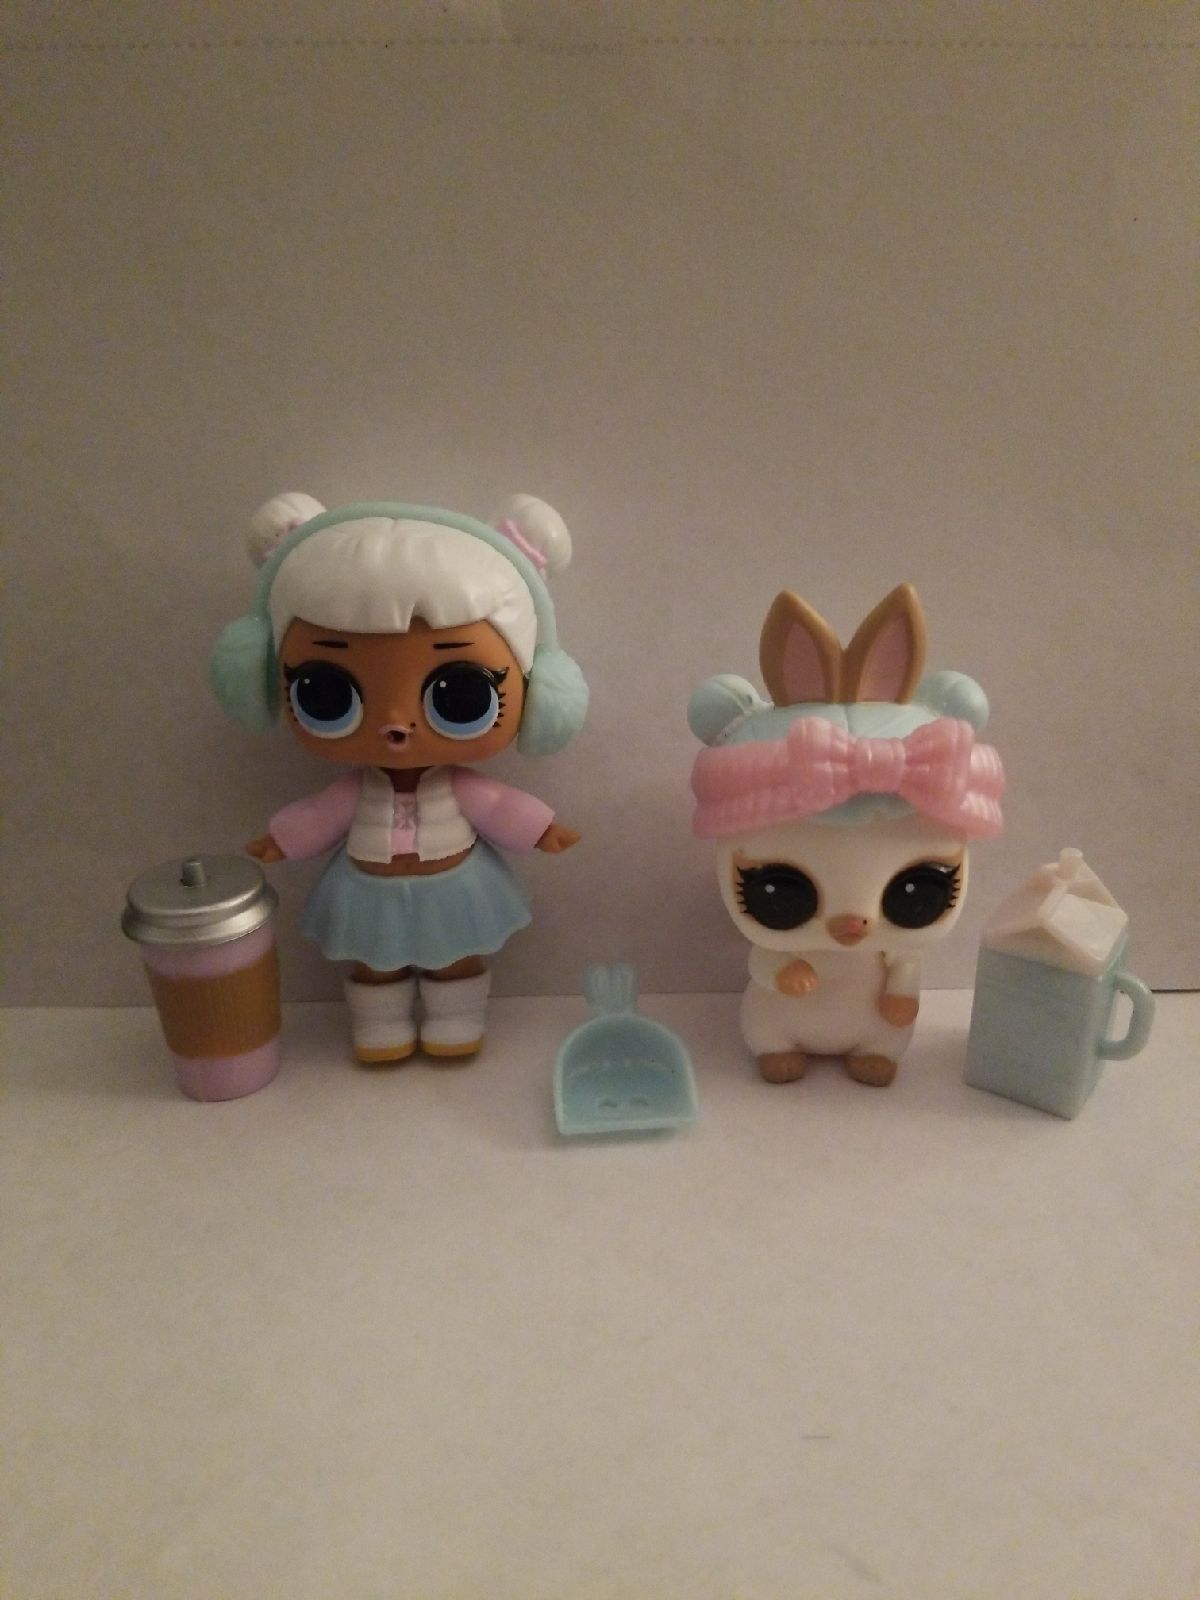 Lol Snow Angel New From Omg Doll Set Snow Bunny Complete Smoke Free Home Willing To Seperate And Or Combi Cool Toys For Girls Lol Dolls Doll Sleeping Bag